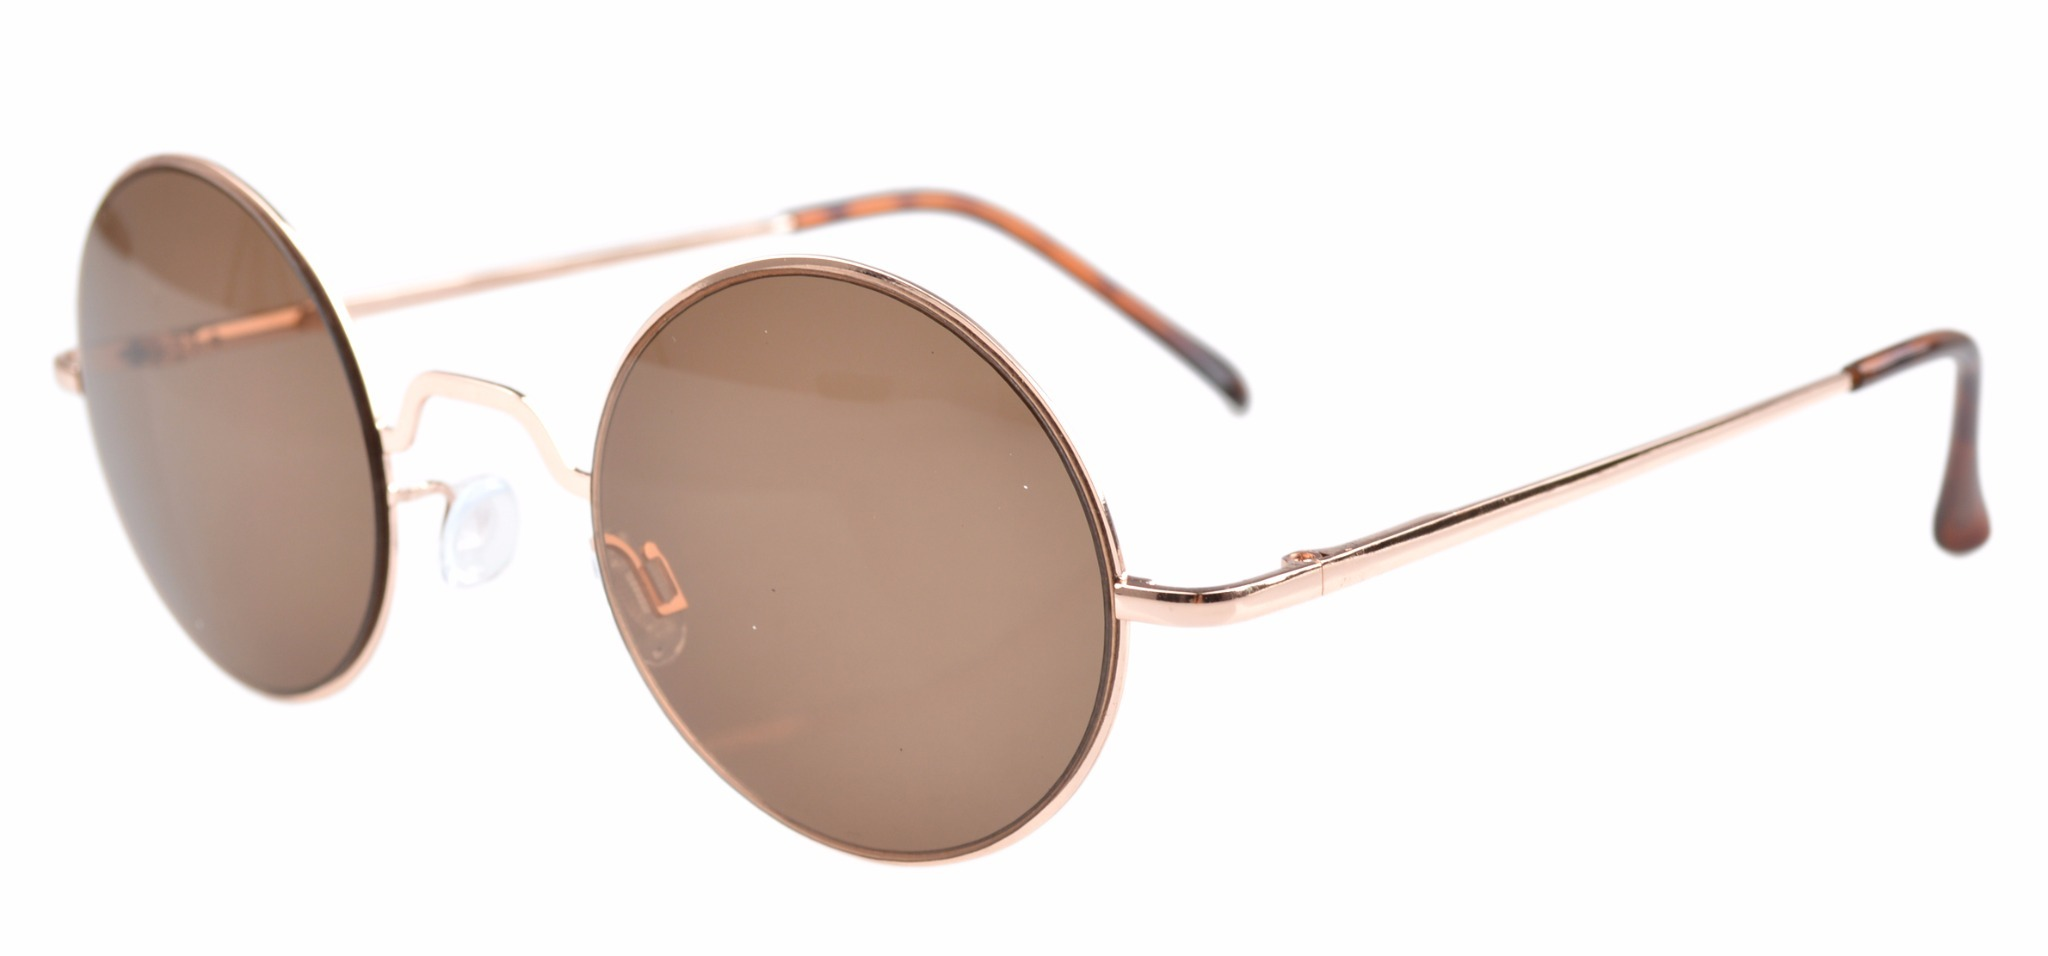 Eyekepper Spring Hinges Round Sunglasses R1503-Brown lens-0.0